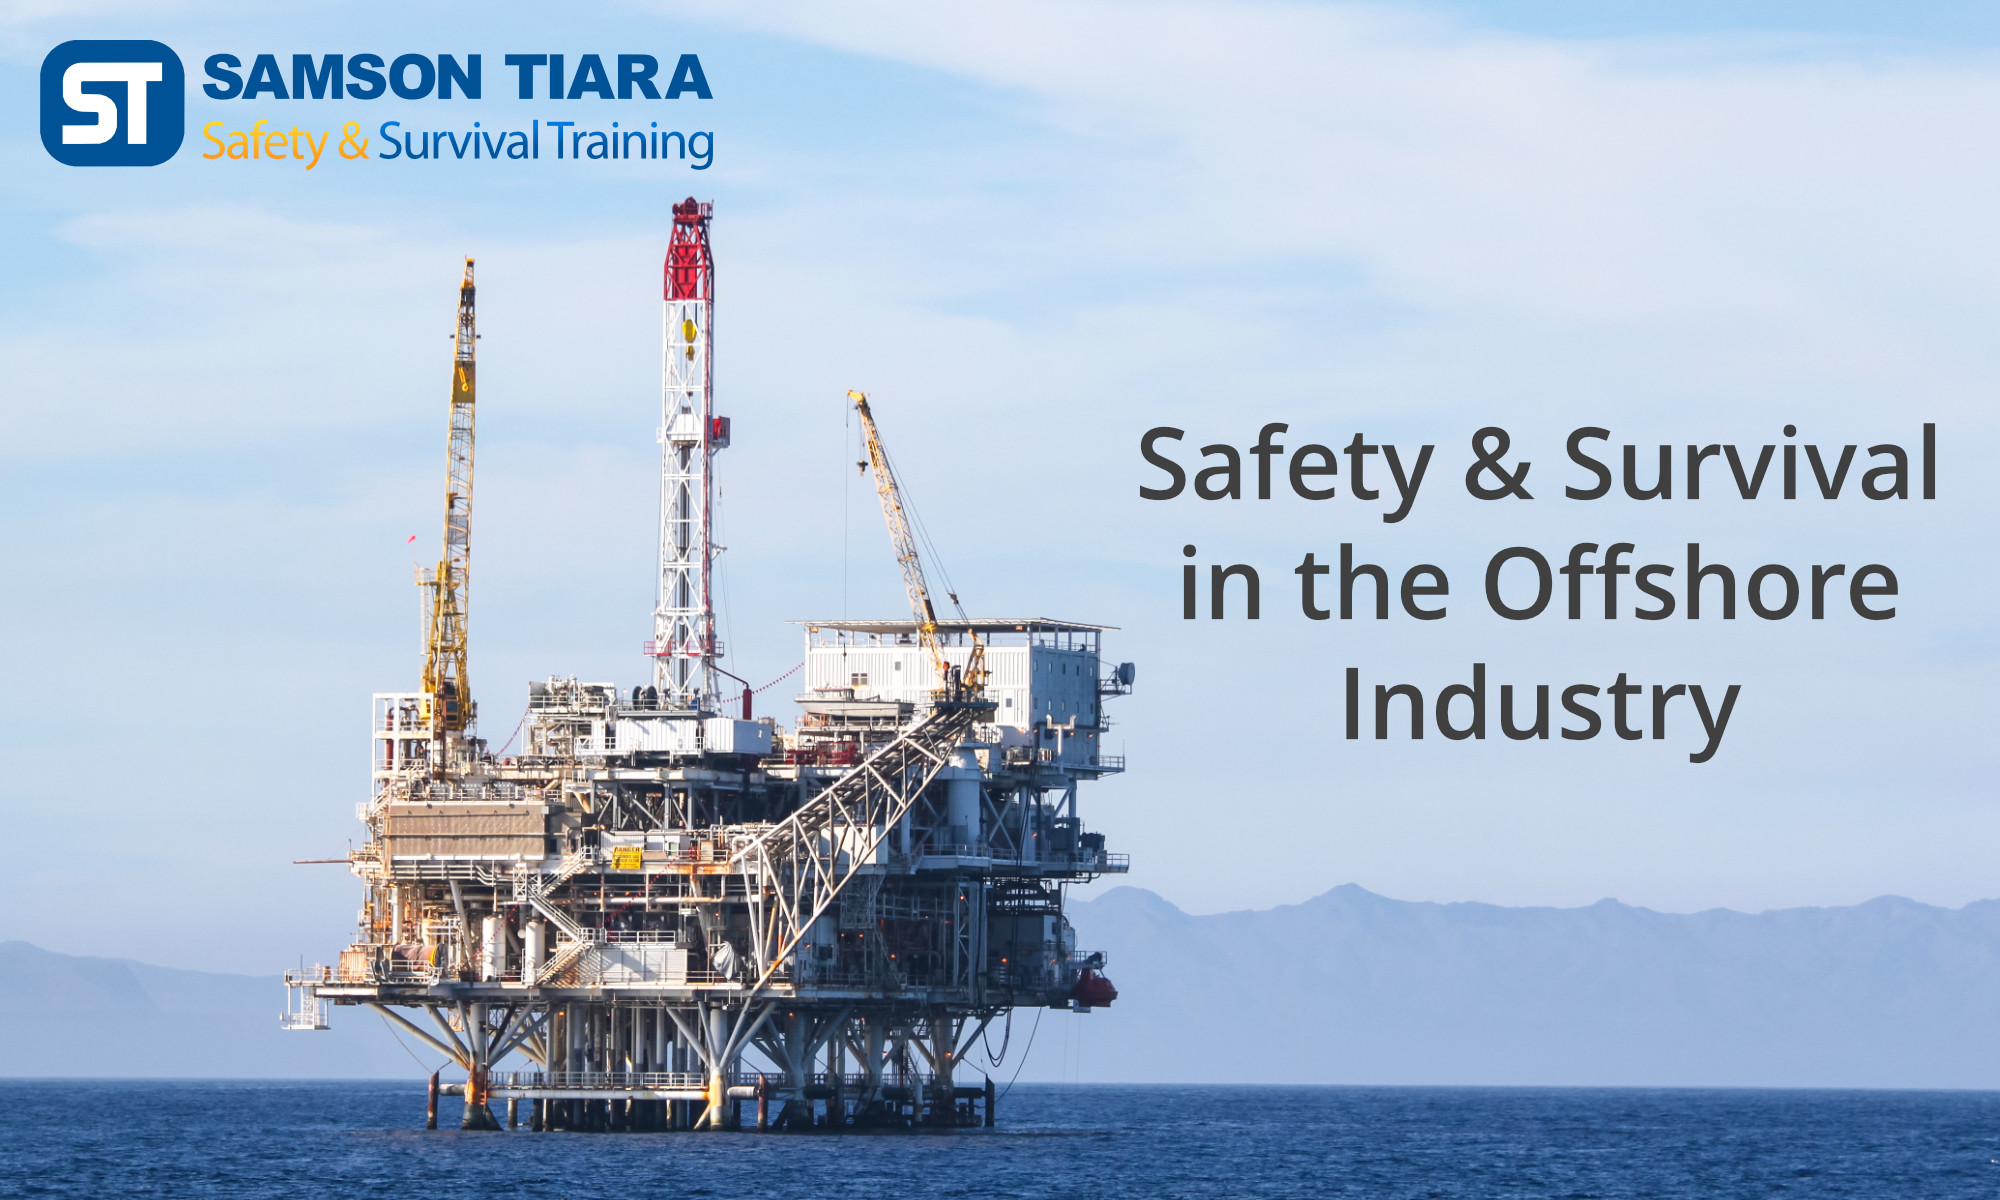 Safety & Survival in the Offshore Industry